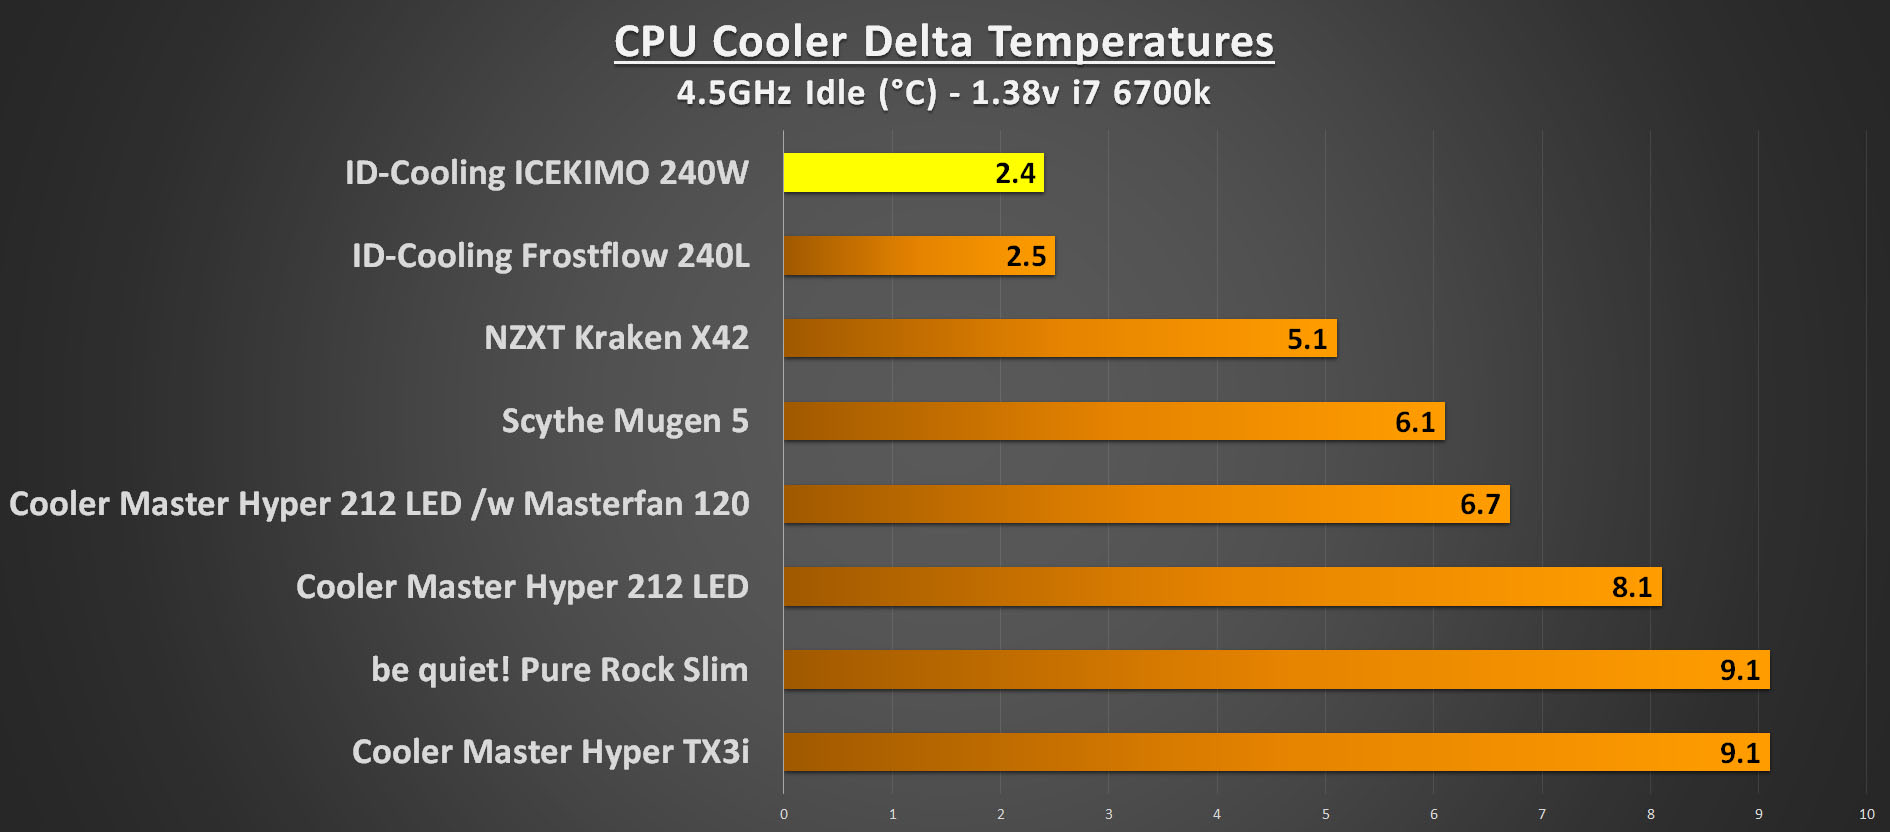 ID-Cooling ICEKIMO 240W Performance 4.5GHz Idle